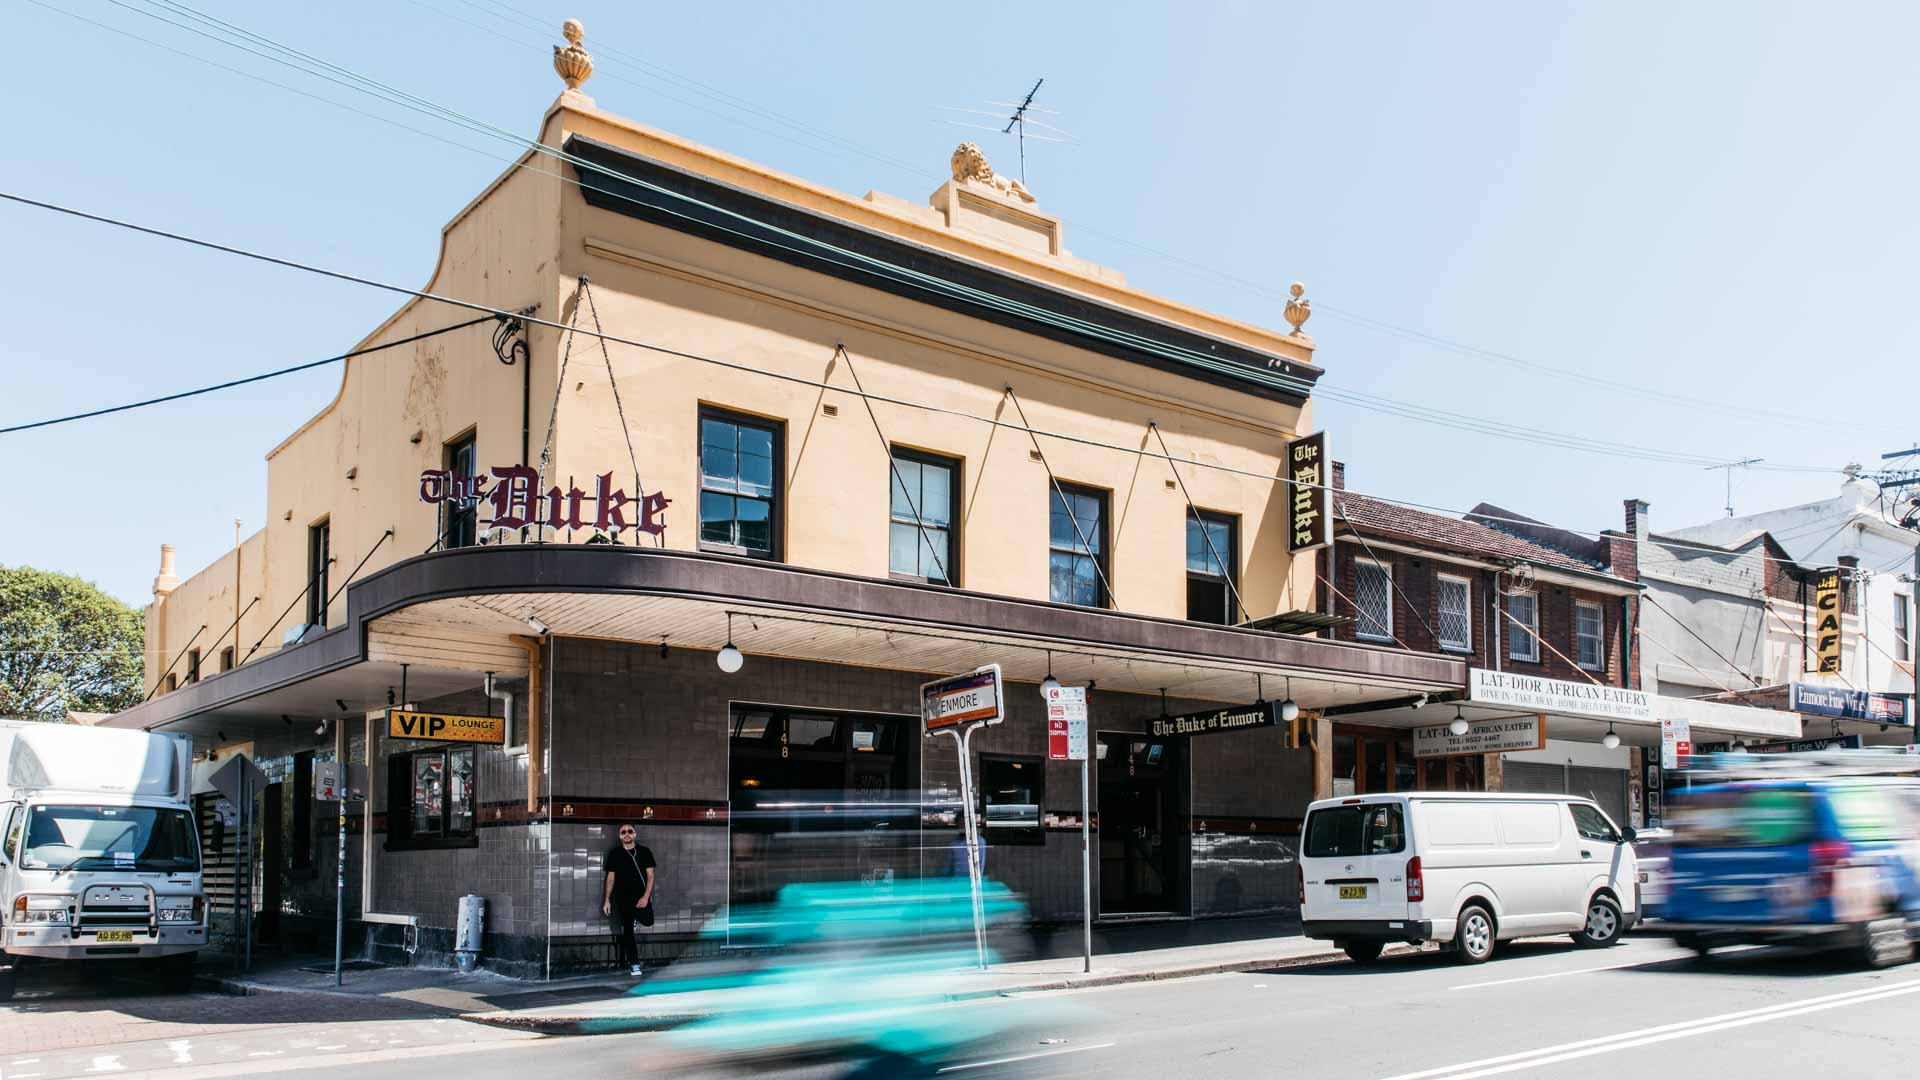 The Duke of Enmore